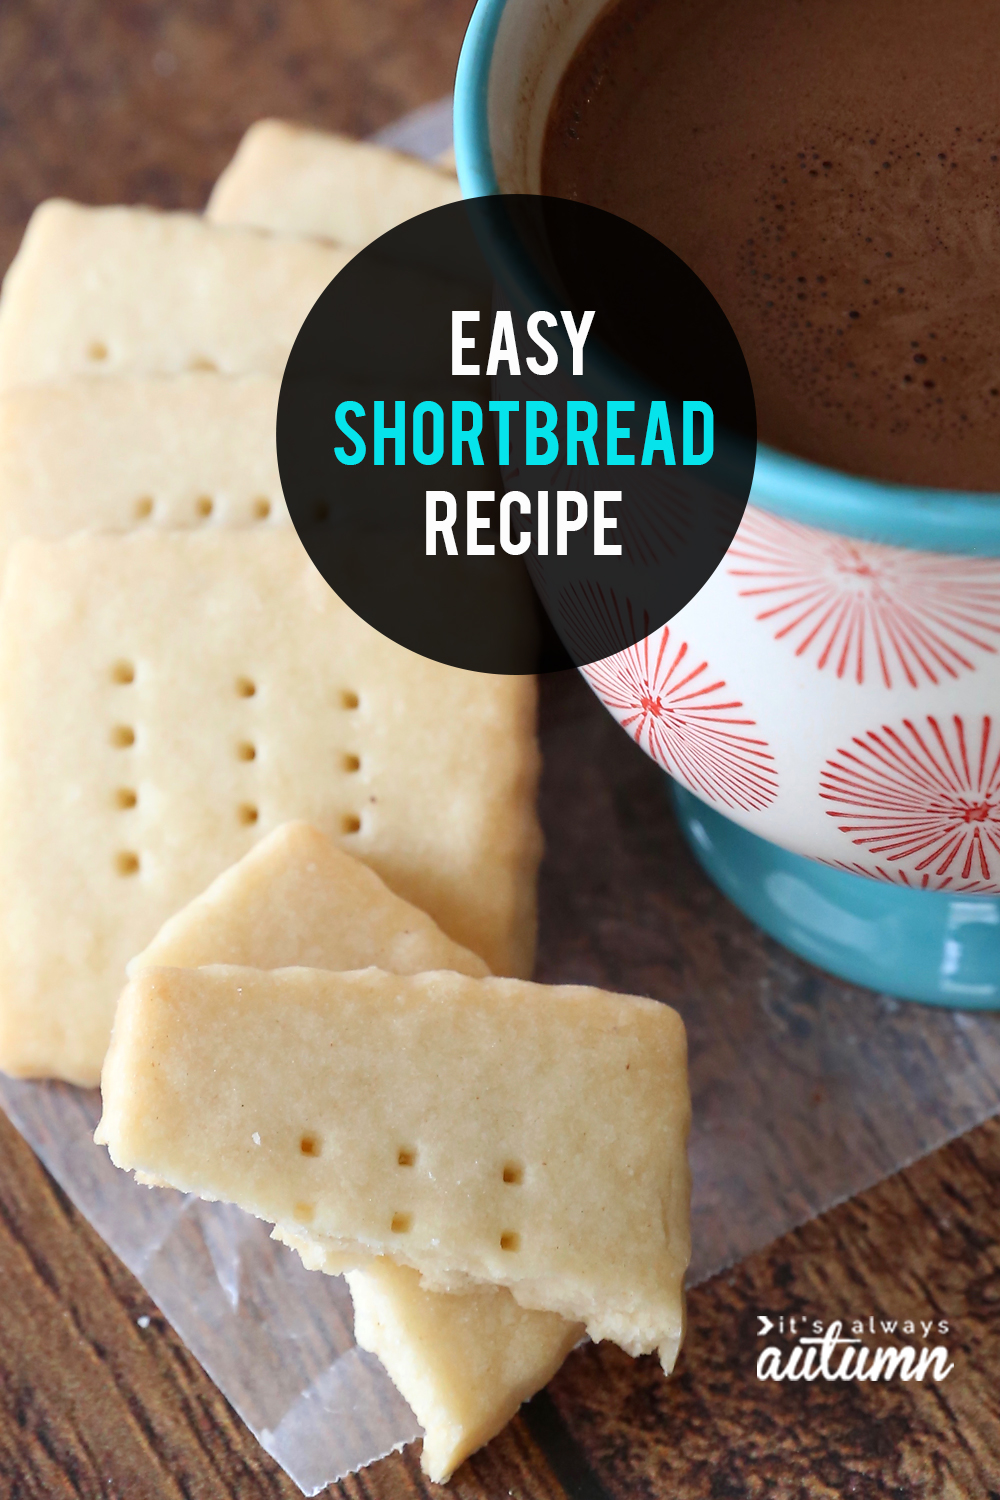 The is THE BEST homemade shortbread recipe, and it's so easy!